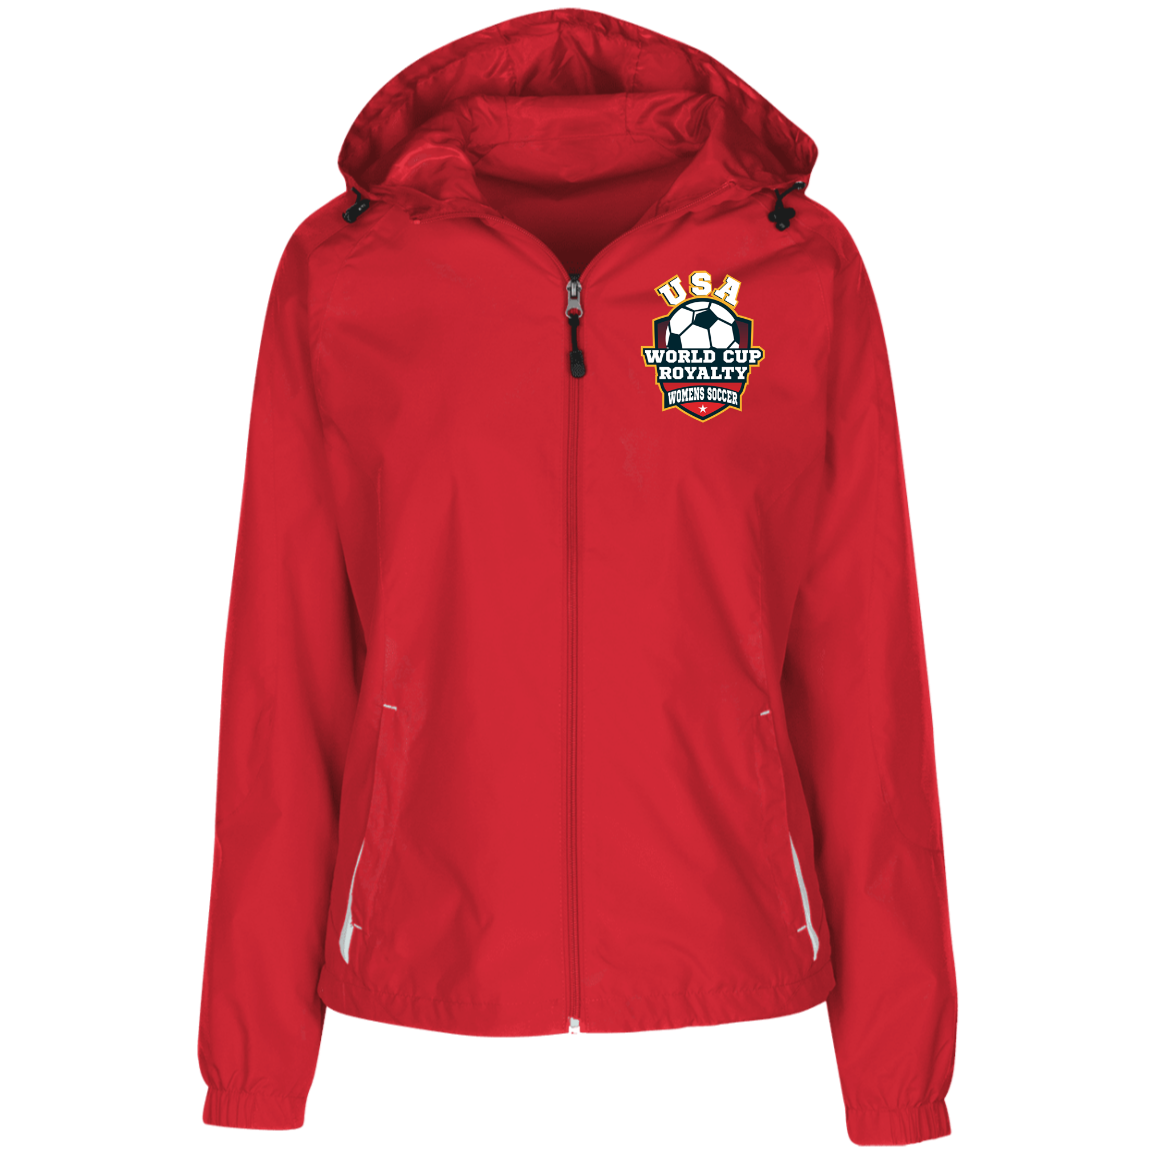 Ladies World Cup Royalty Soccer Jersey-Lined Hooded Windbreaker